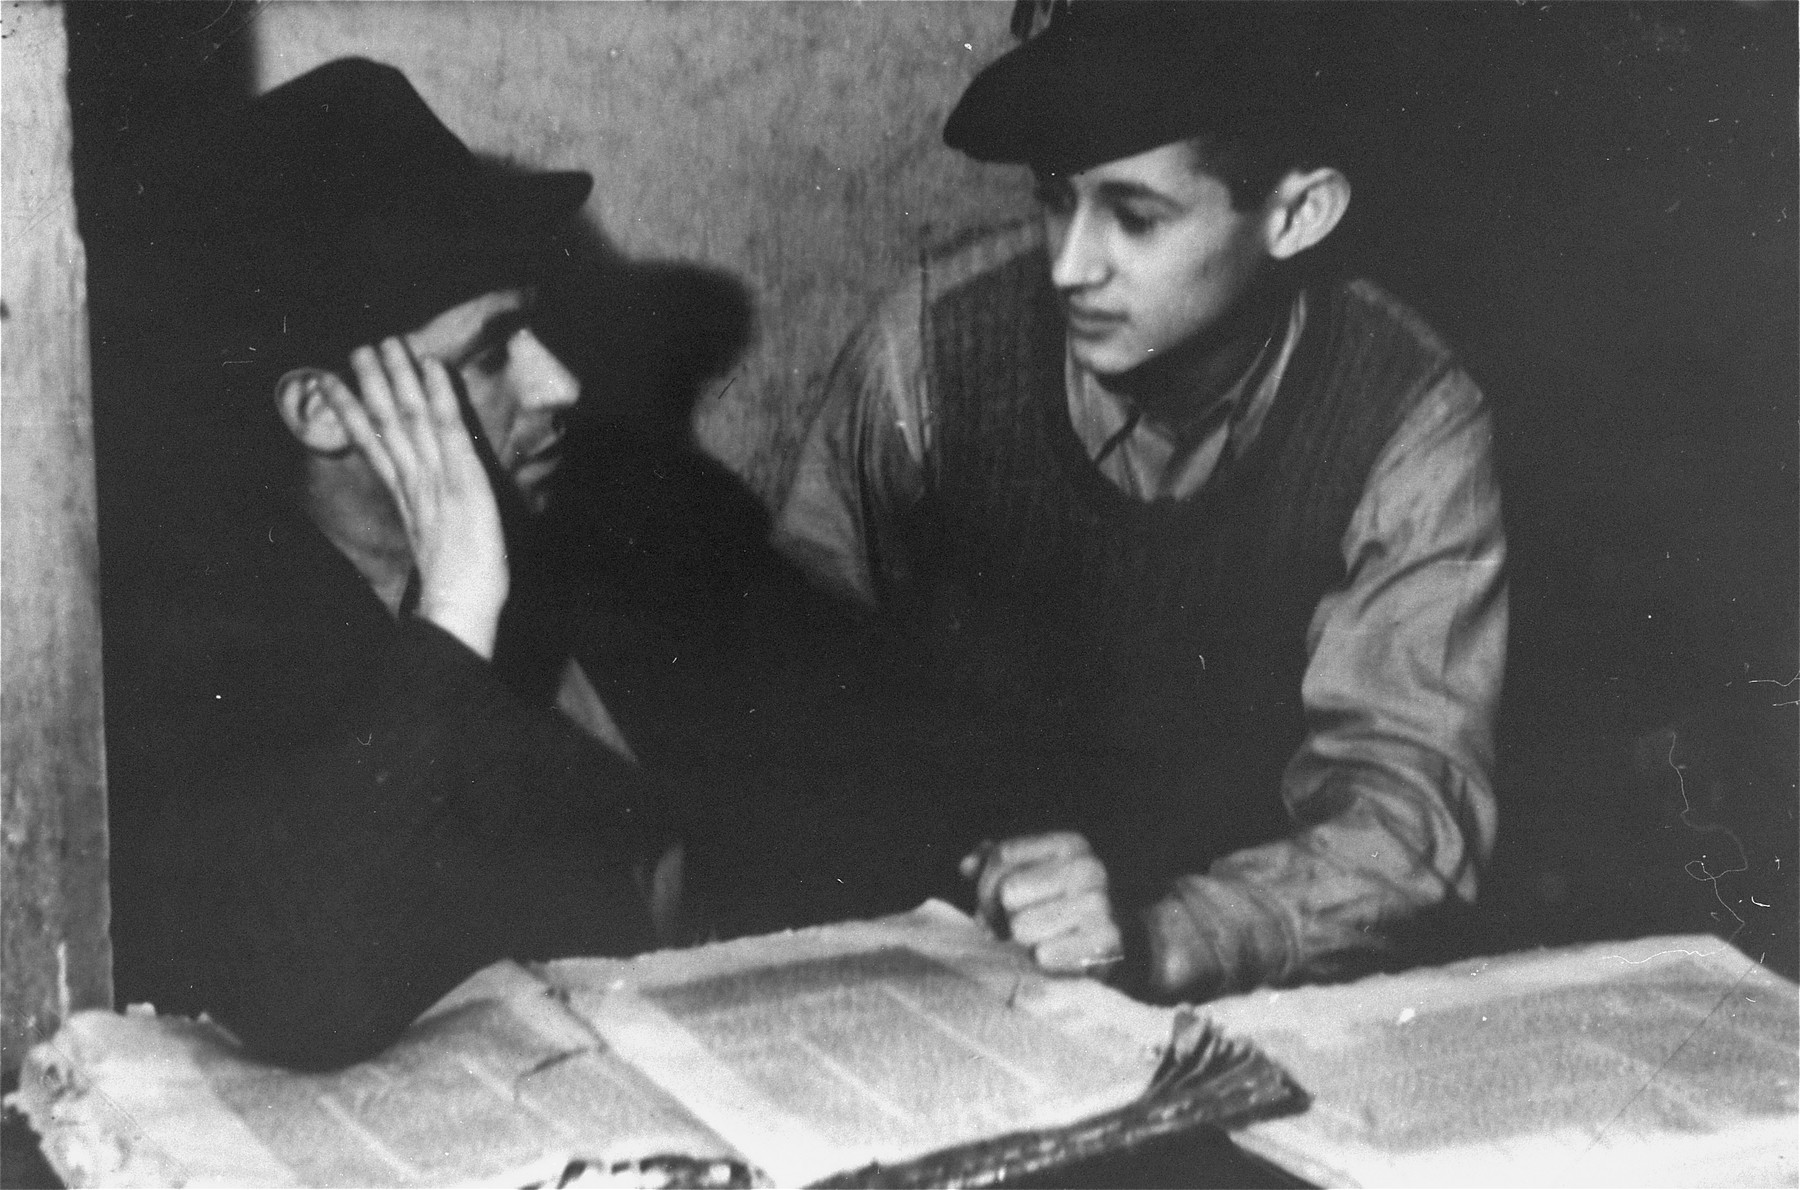 Students study Talmud at a Yeshiva in the Zeilsheim displaced person's camp.